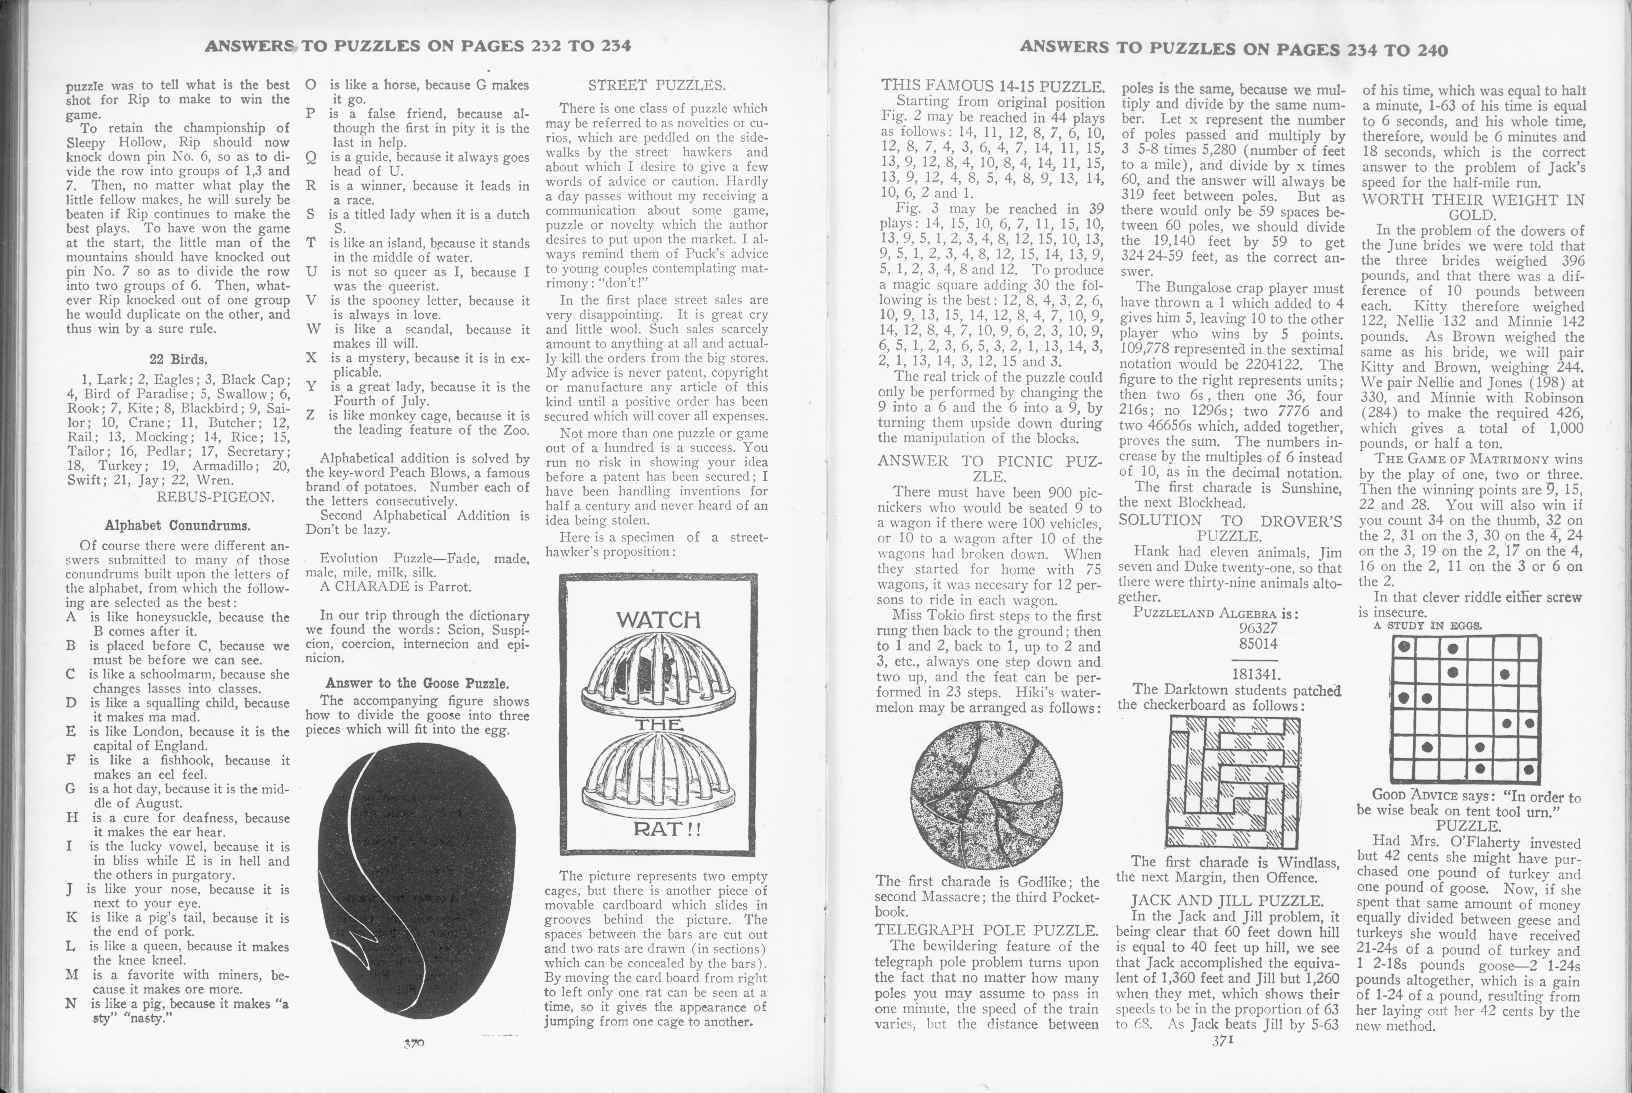 Sam Loyd - Cyclopedia of Puzzles - page 370-371